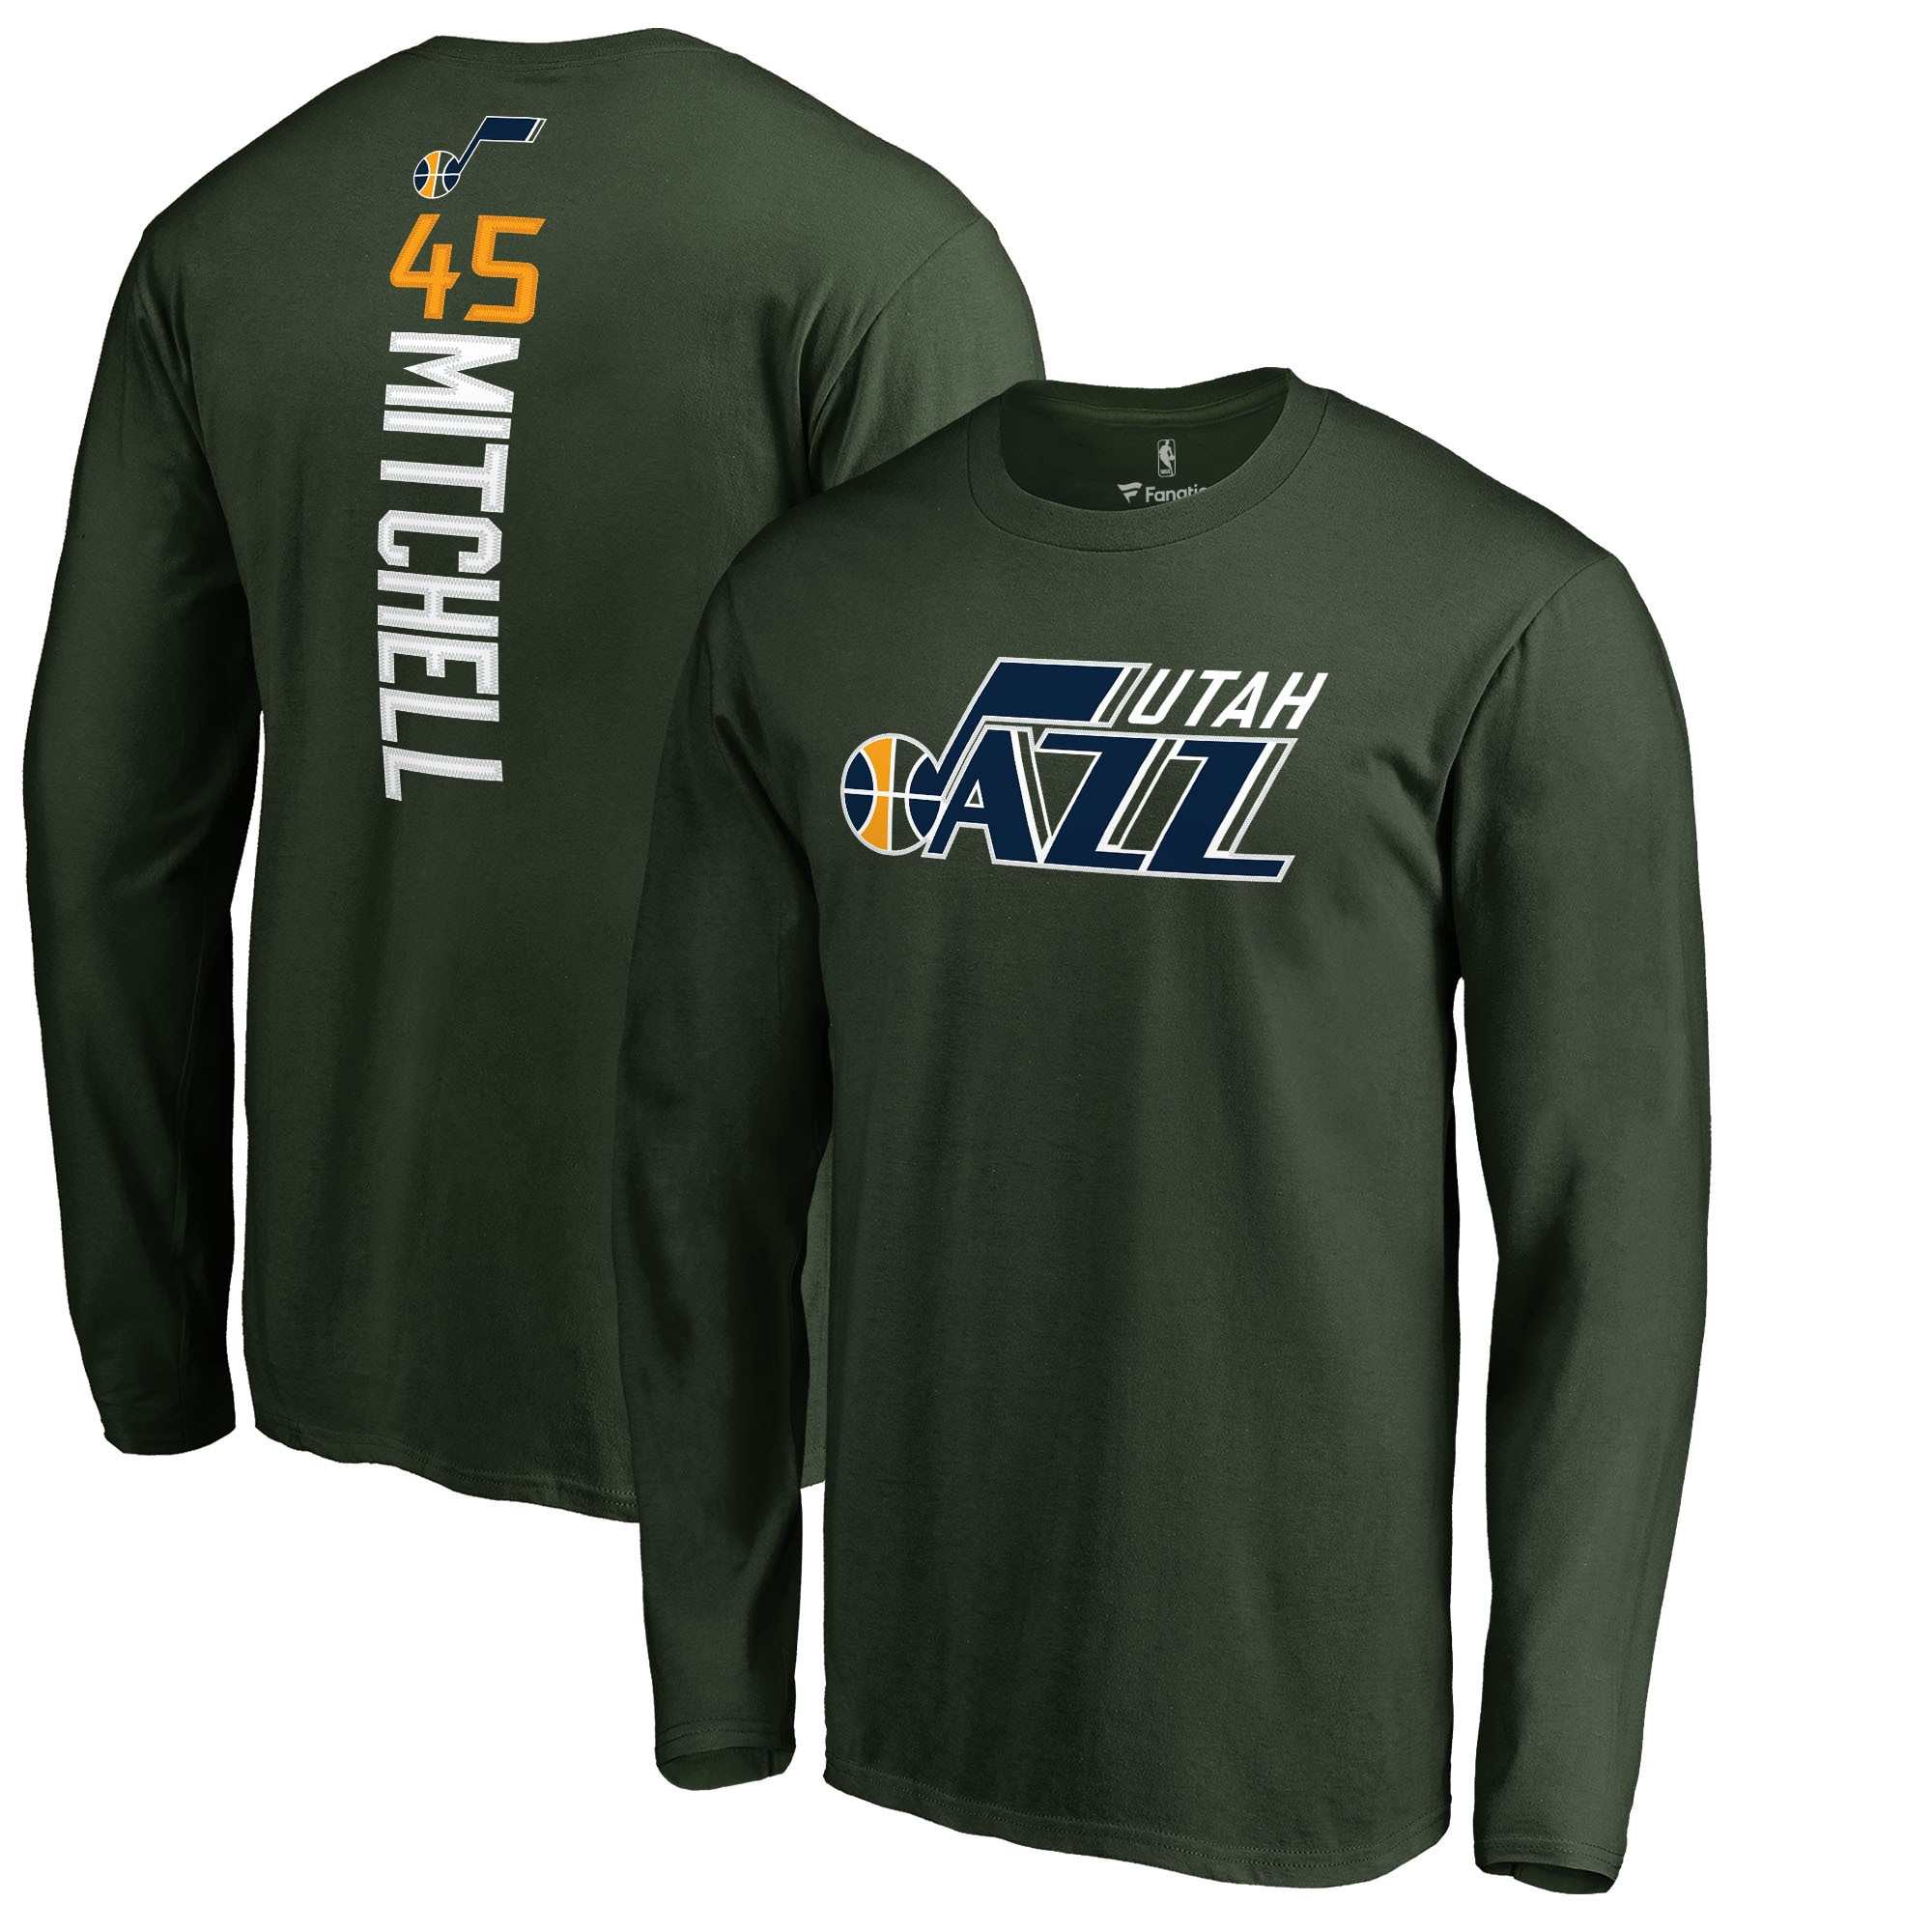 Donovan Mitchell Utah Jazz Fanatics Branded Team Backer Name & Number Long Sleeve T-Shirt - Green